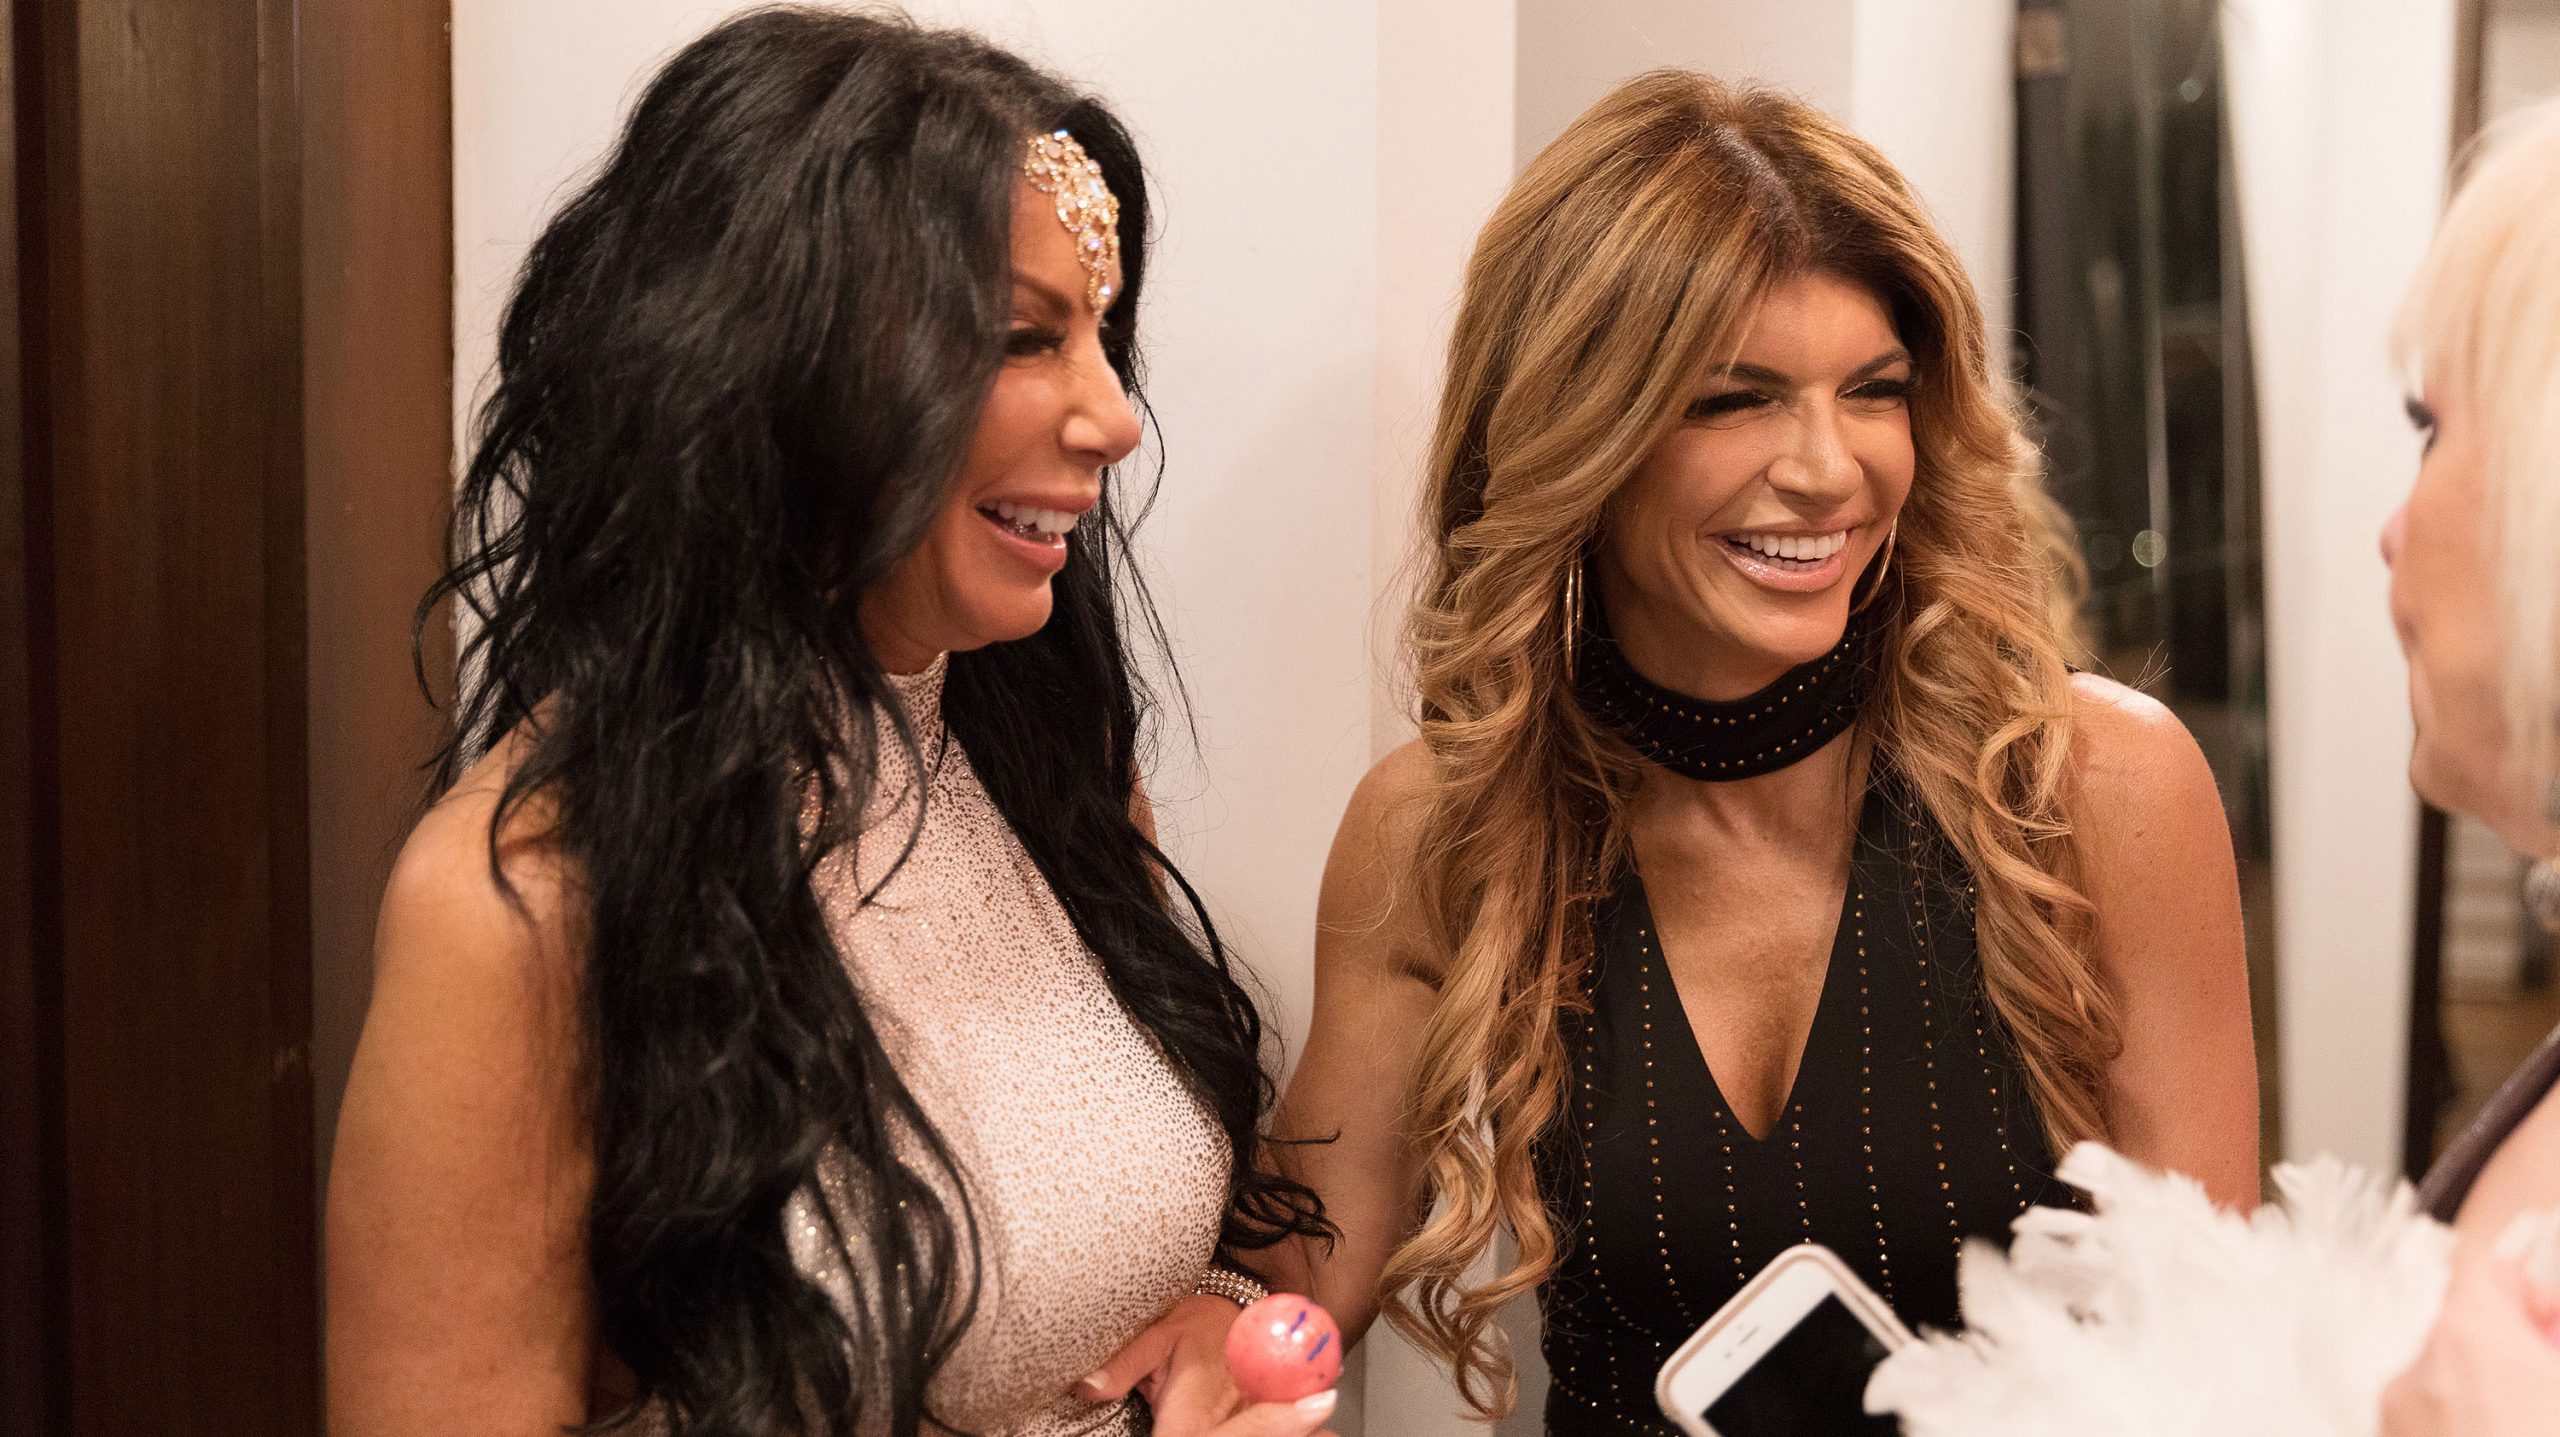 Danielle Staub, Teresa Giudice, The Real Housewives of New Jersey, RHONJ, Bravo